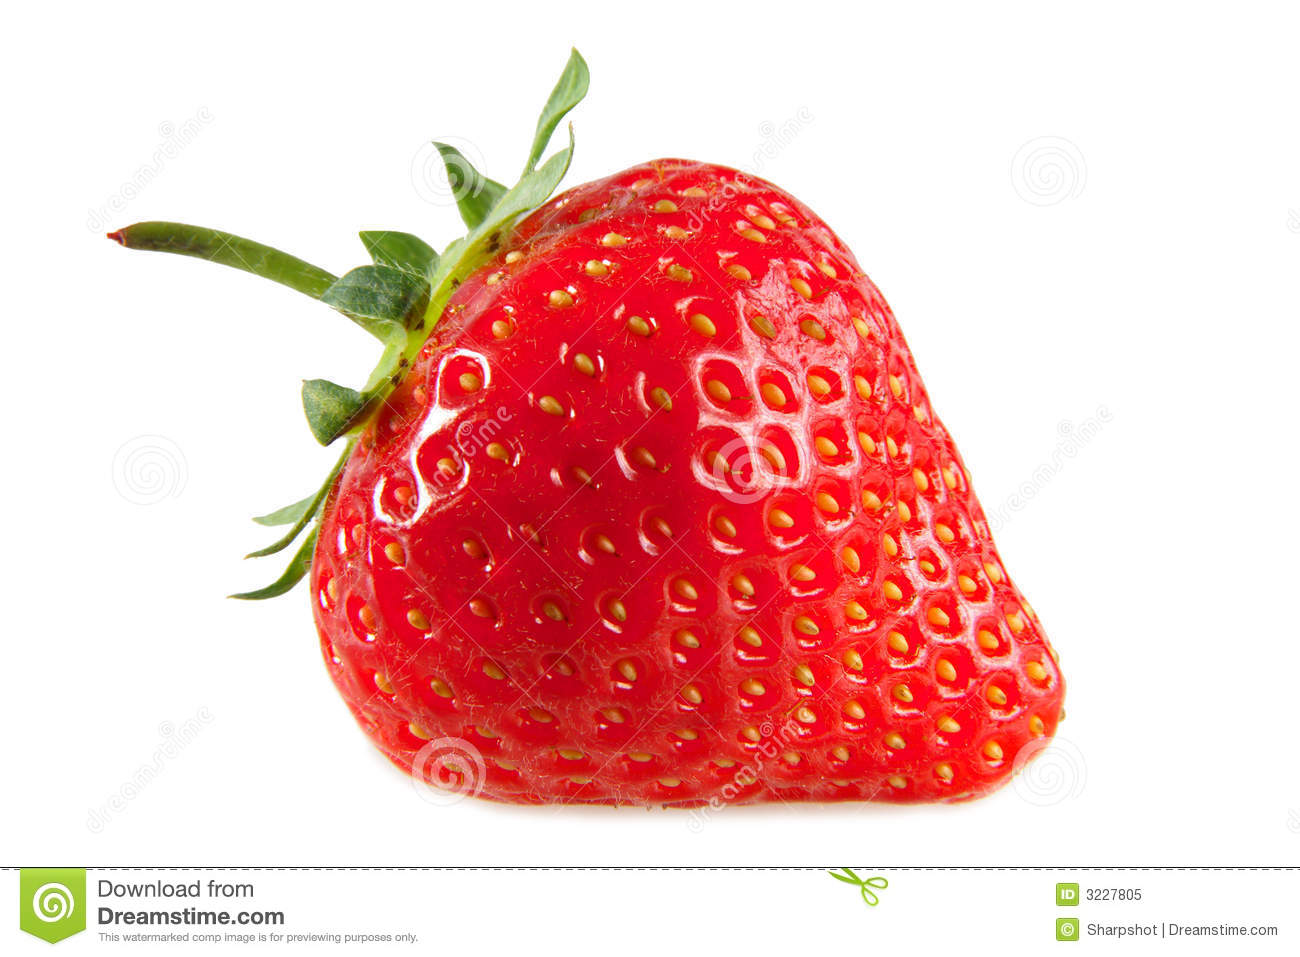 A red strawberry.